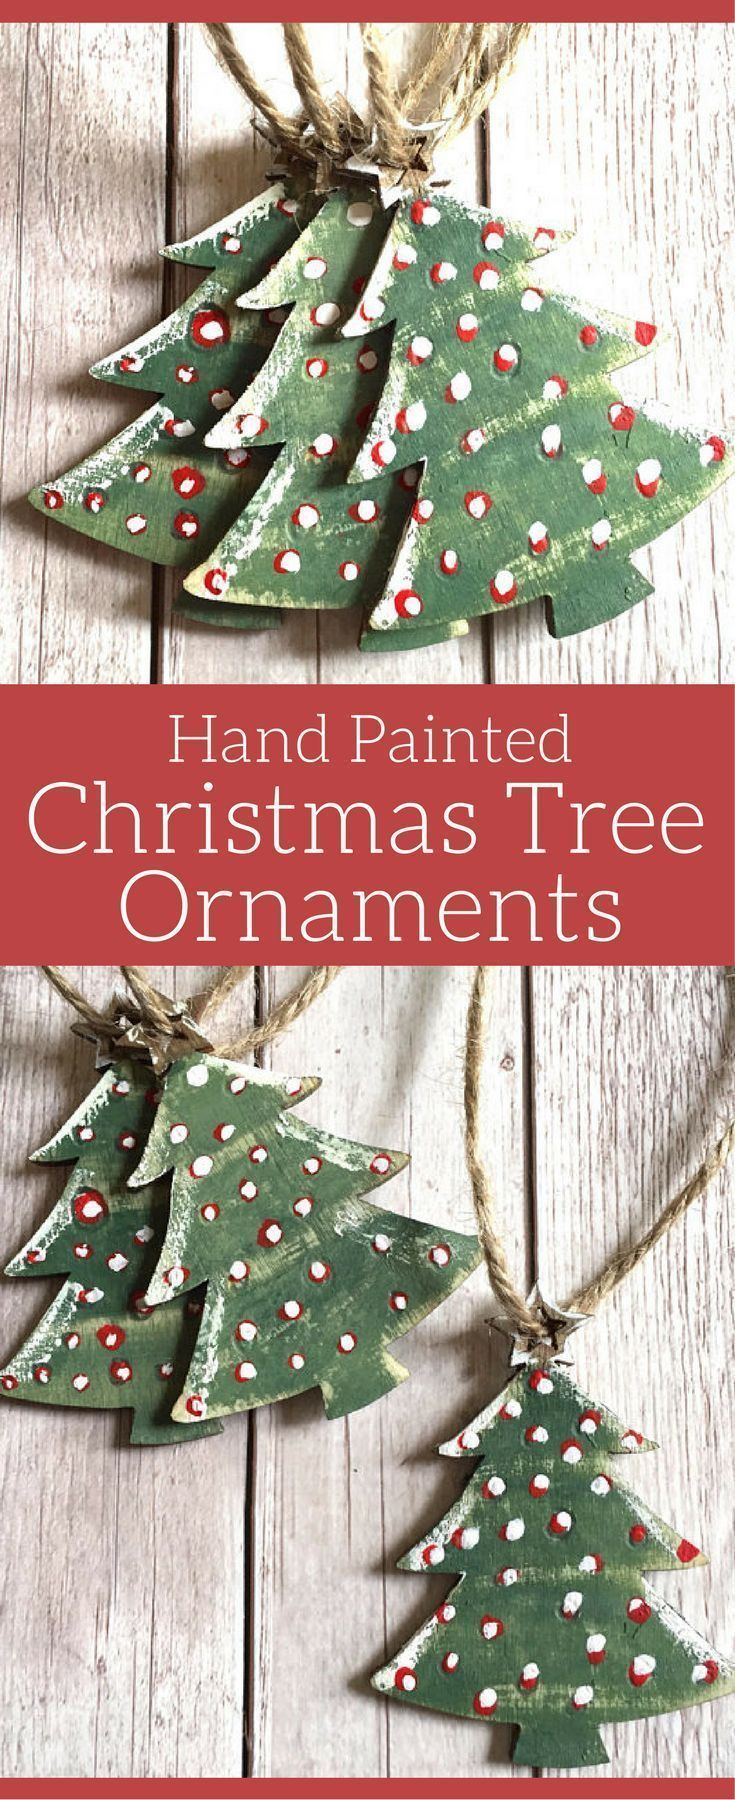 Christmas Tree Ornaments Christmas Decorations Set Of 3 Hand Painted Wooden Orna Christmas Tree Ornaments Christmas Tree Painting Christmas Ornaments To Make